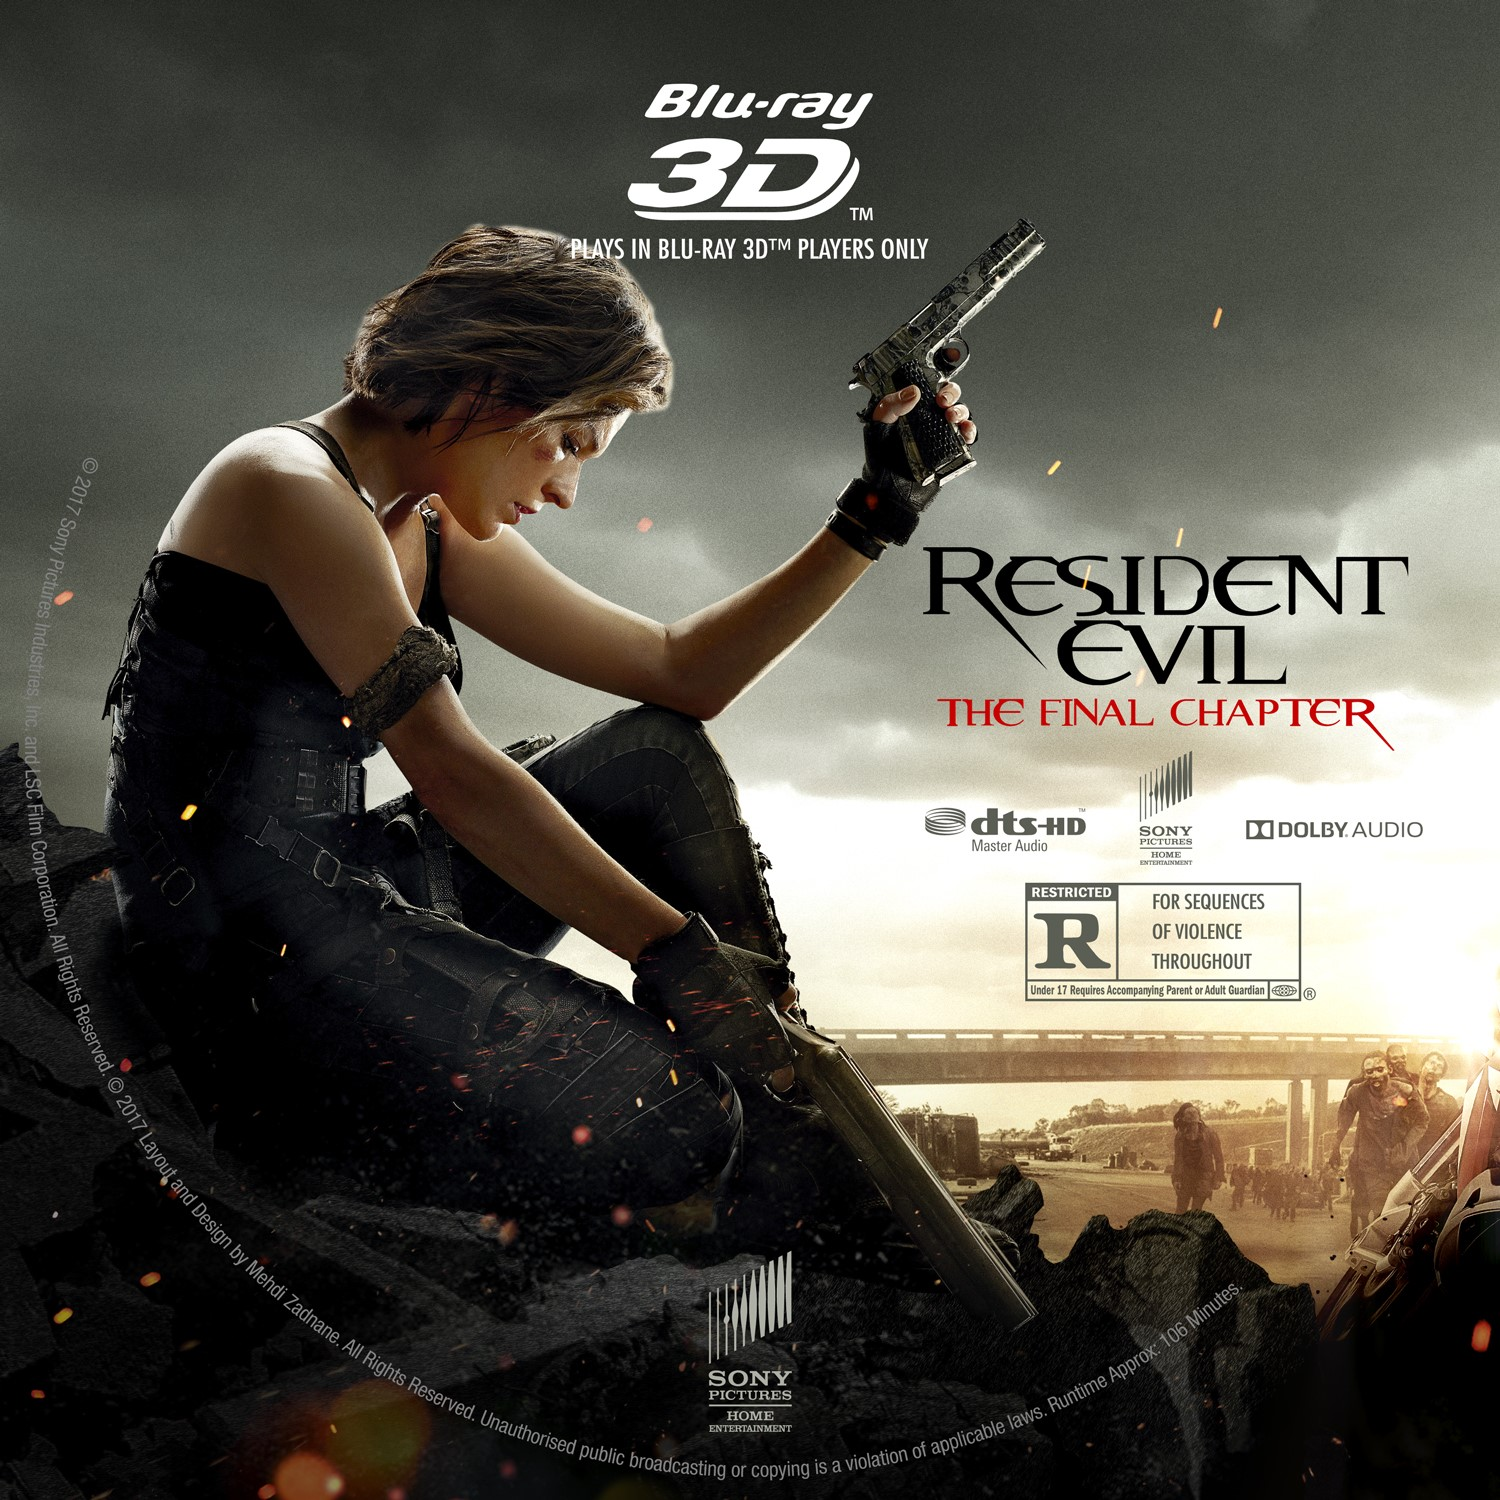 Resident Evil The Final Chapter Bluray 3d Label Cover Addict